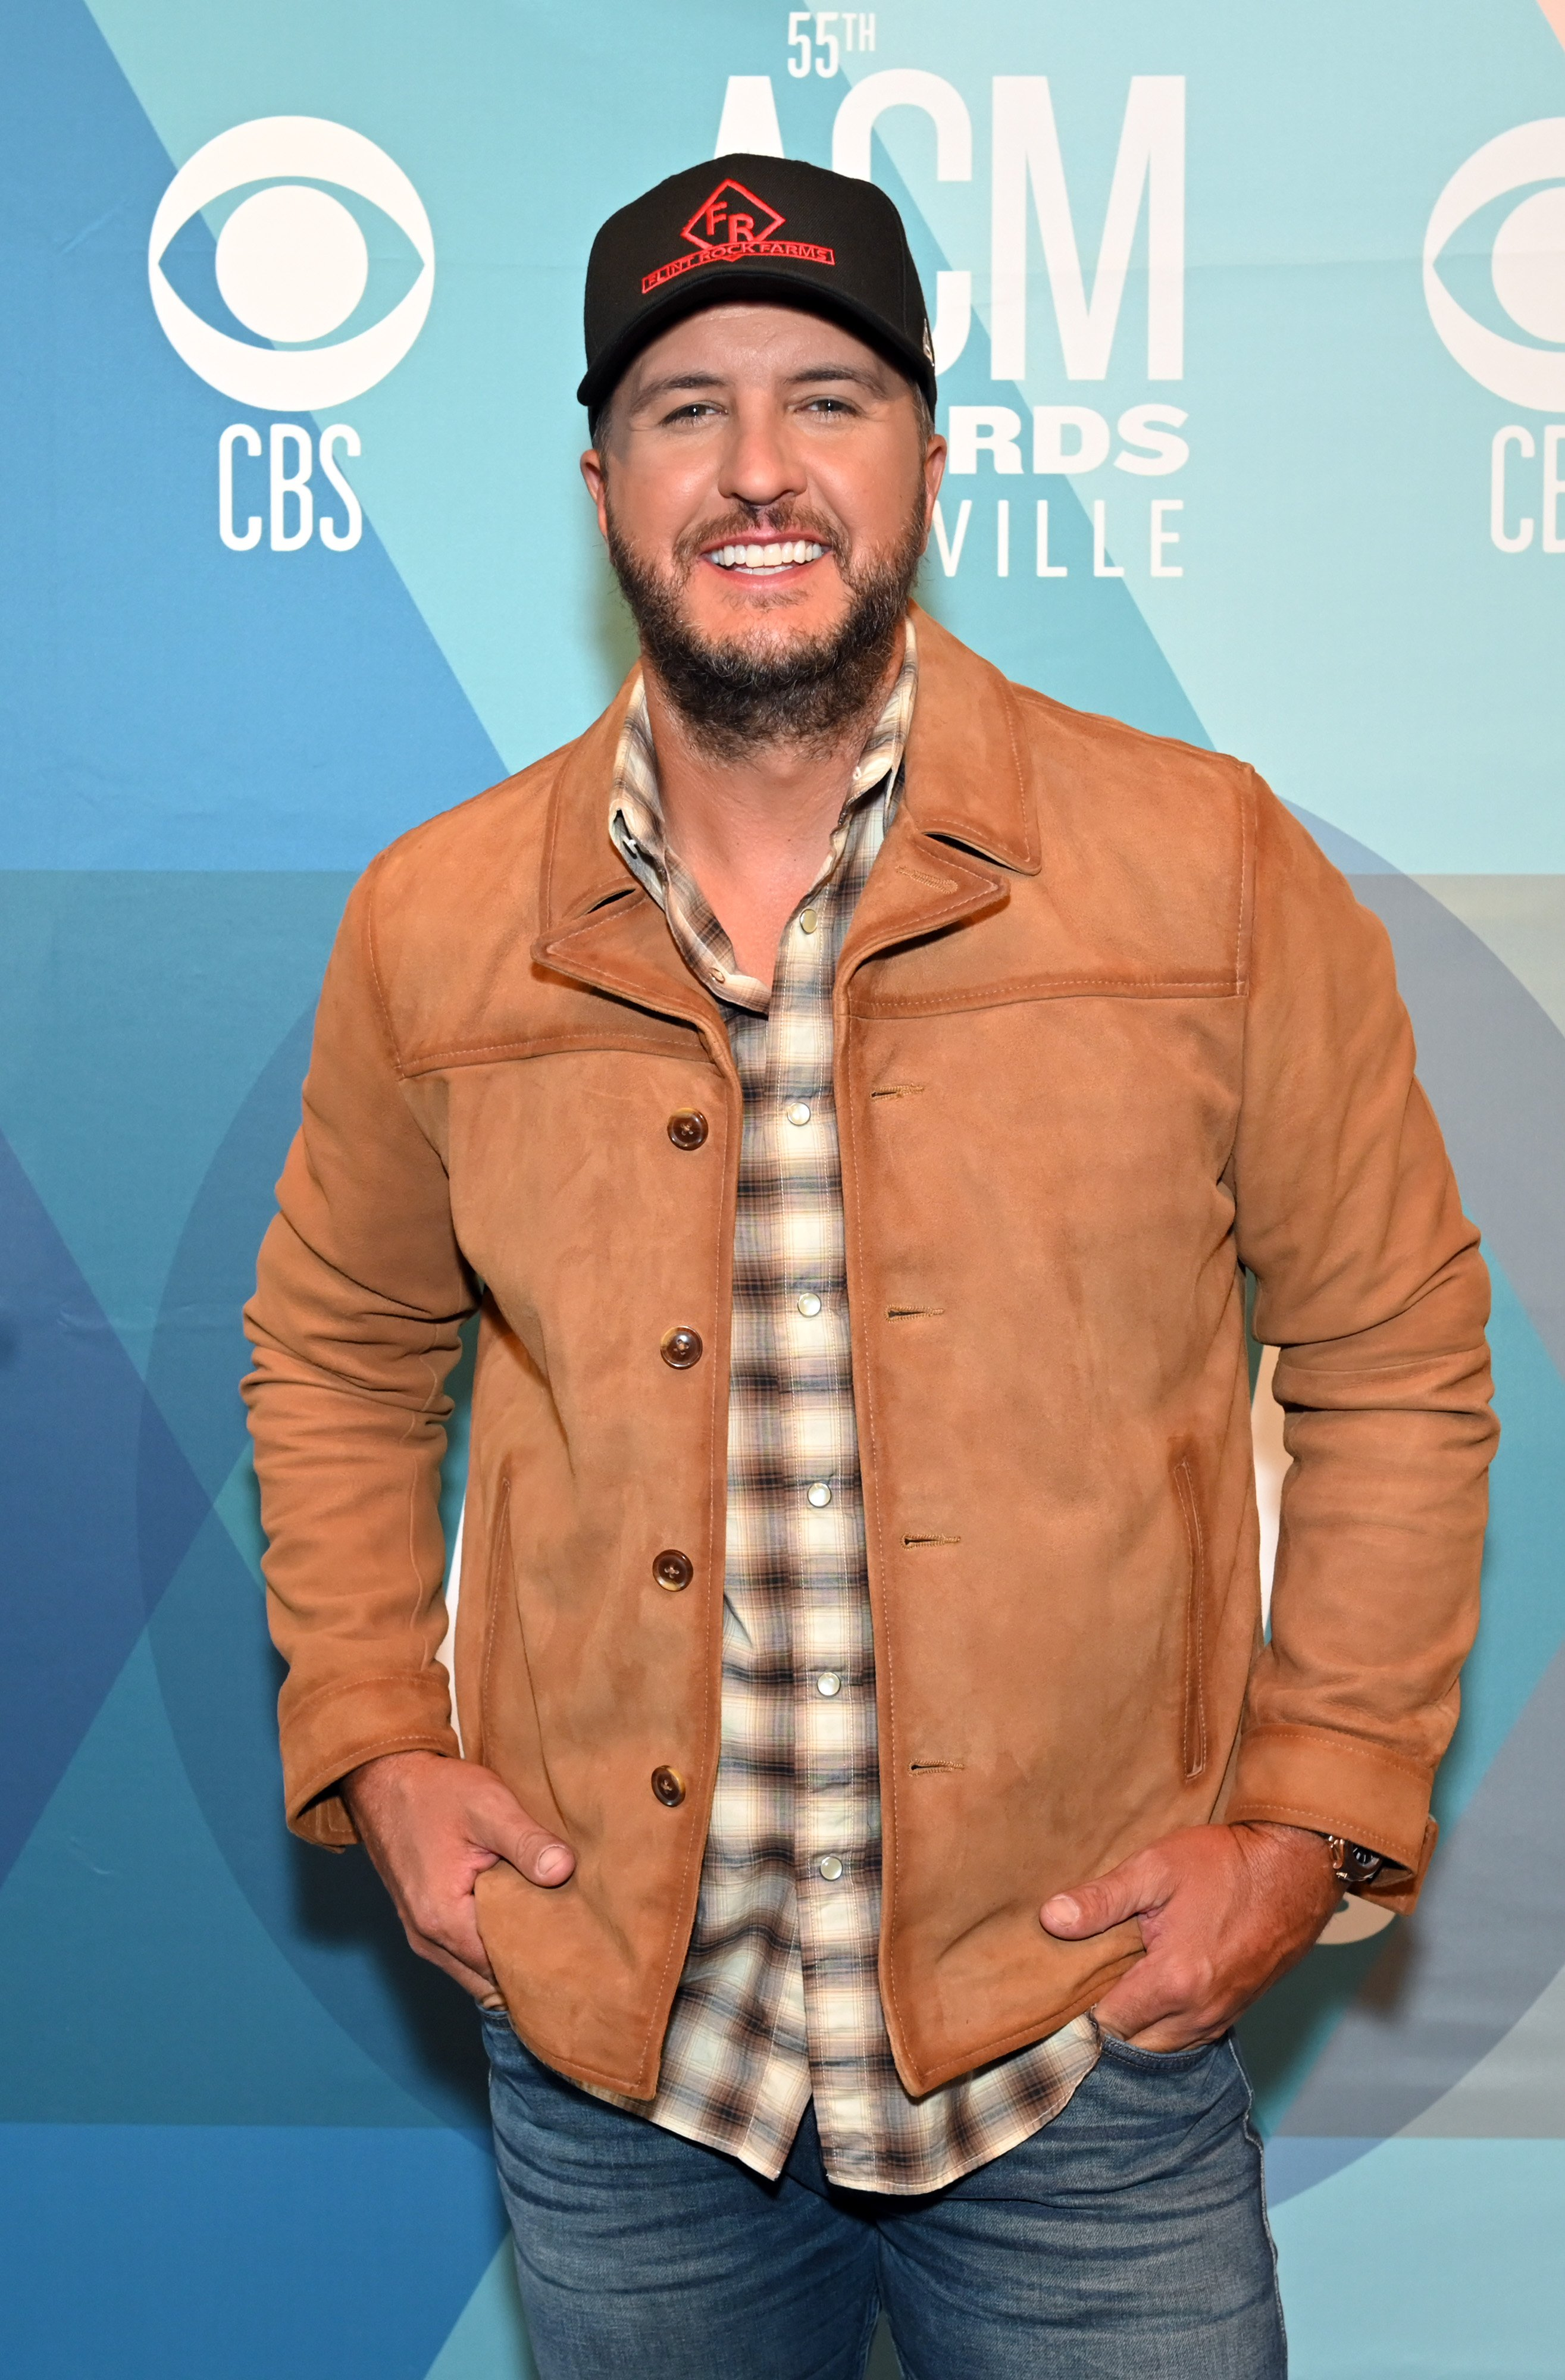 Luke Bryan attends the 55th Academy of Country Music Awards at the Grand Ole Opry on September 14, 2020 in Nashville, Tennessee | Photo: Getty Images